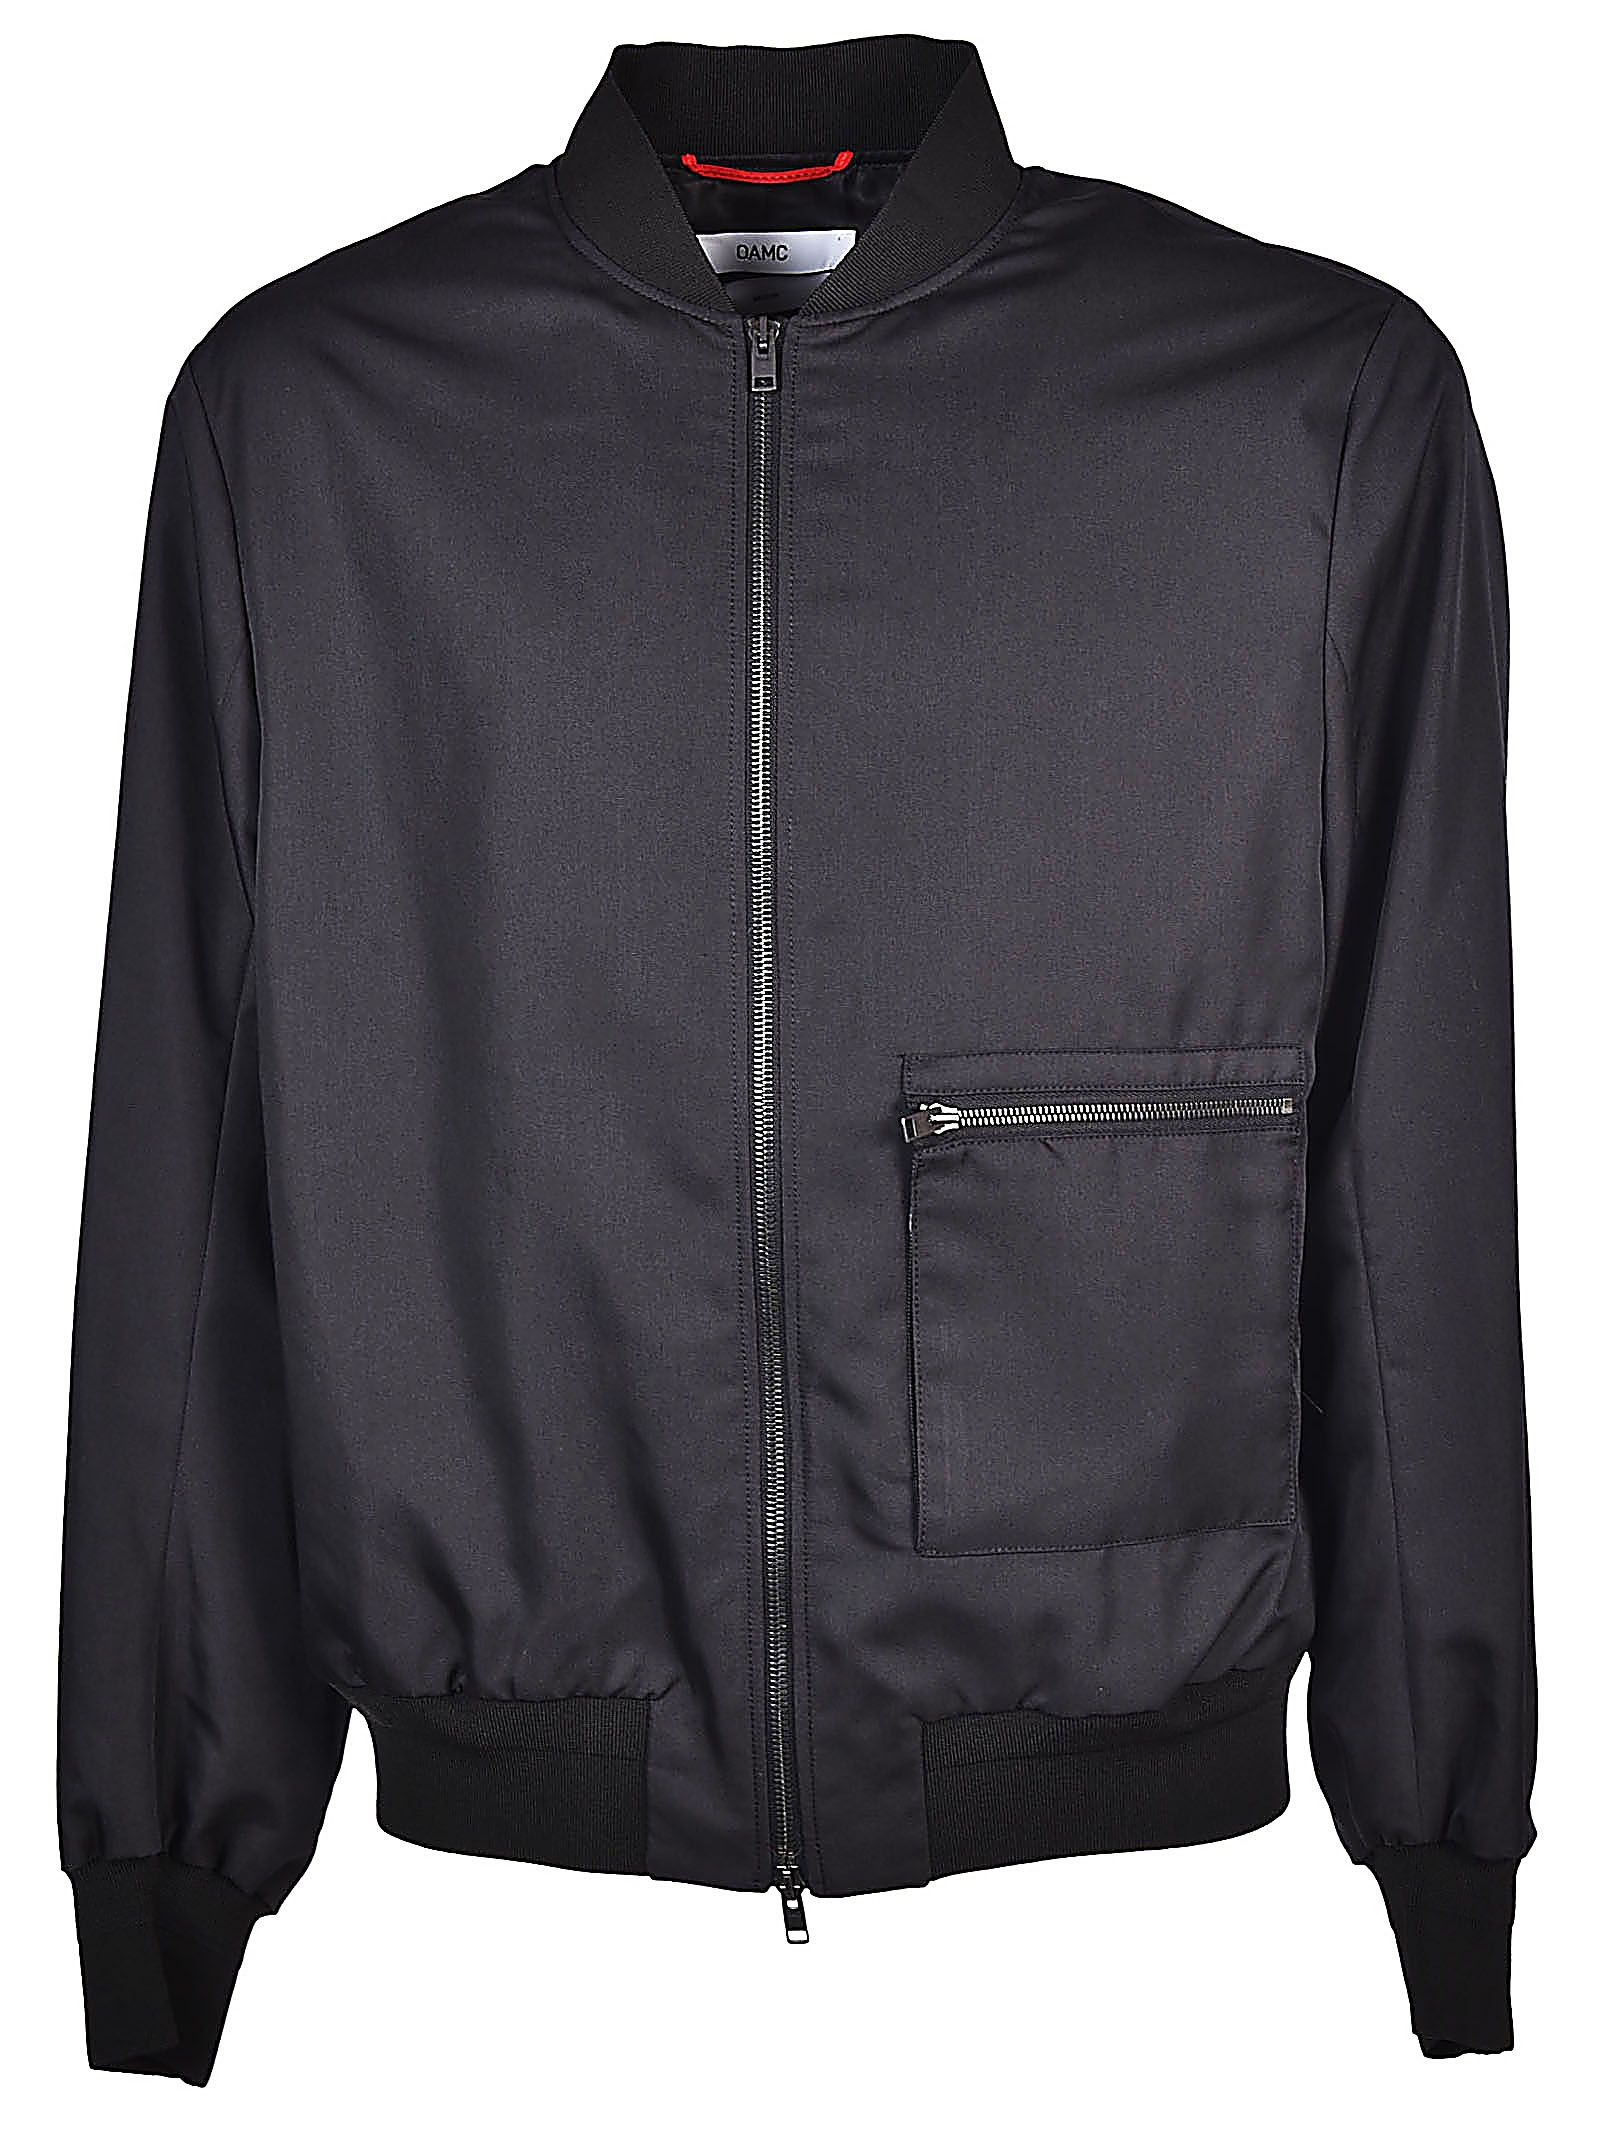 Oamc Zipped Jacket